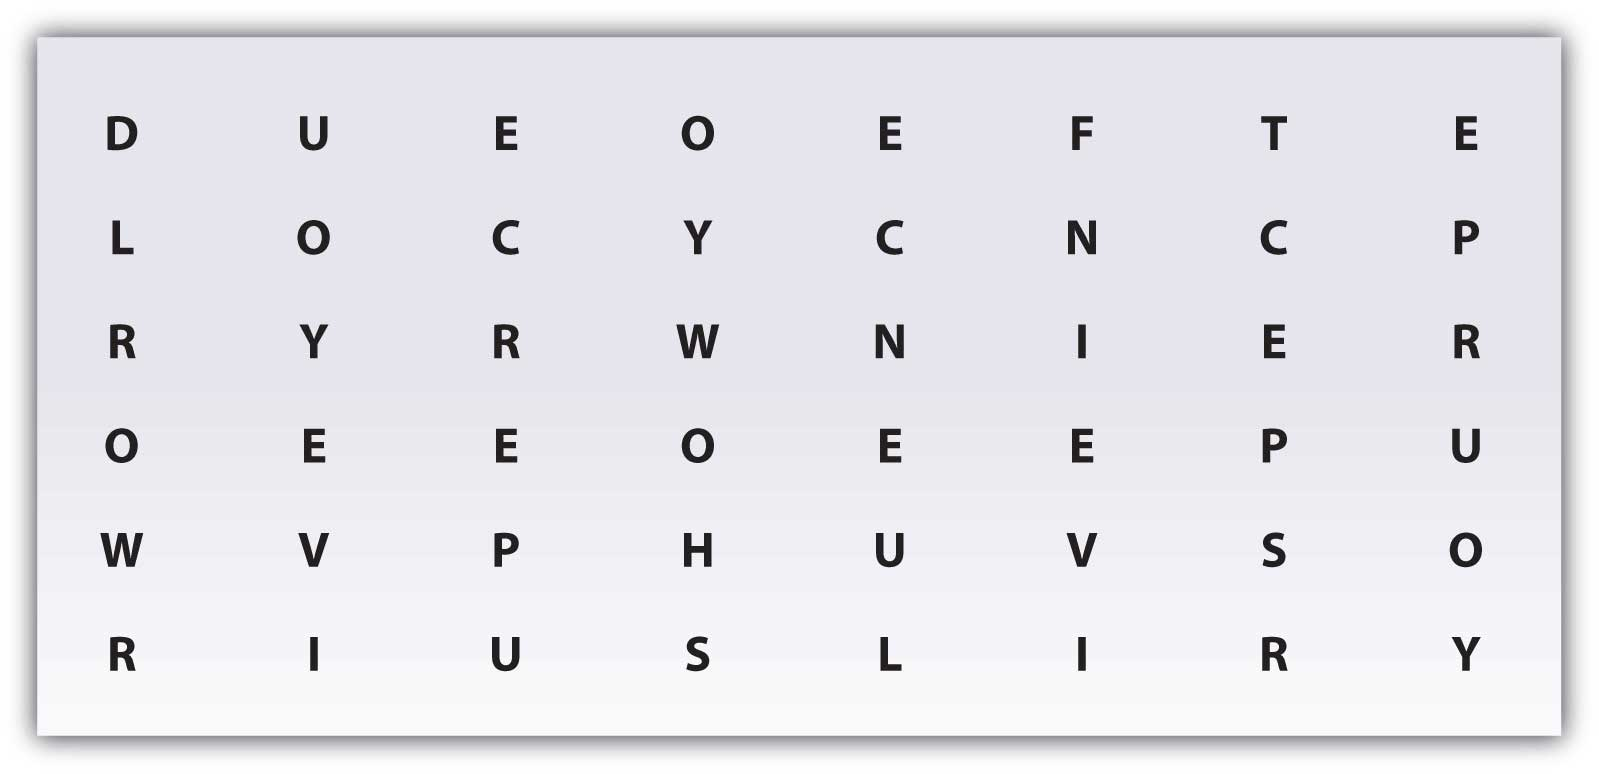 A hidden message in a table of of letters